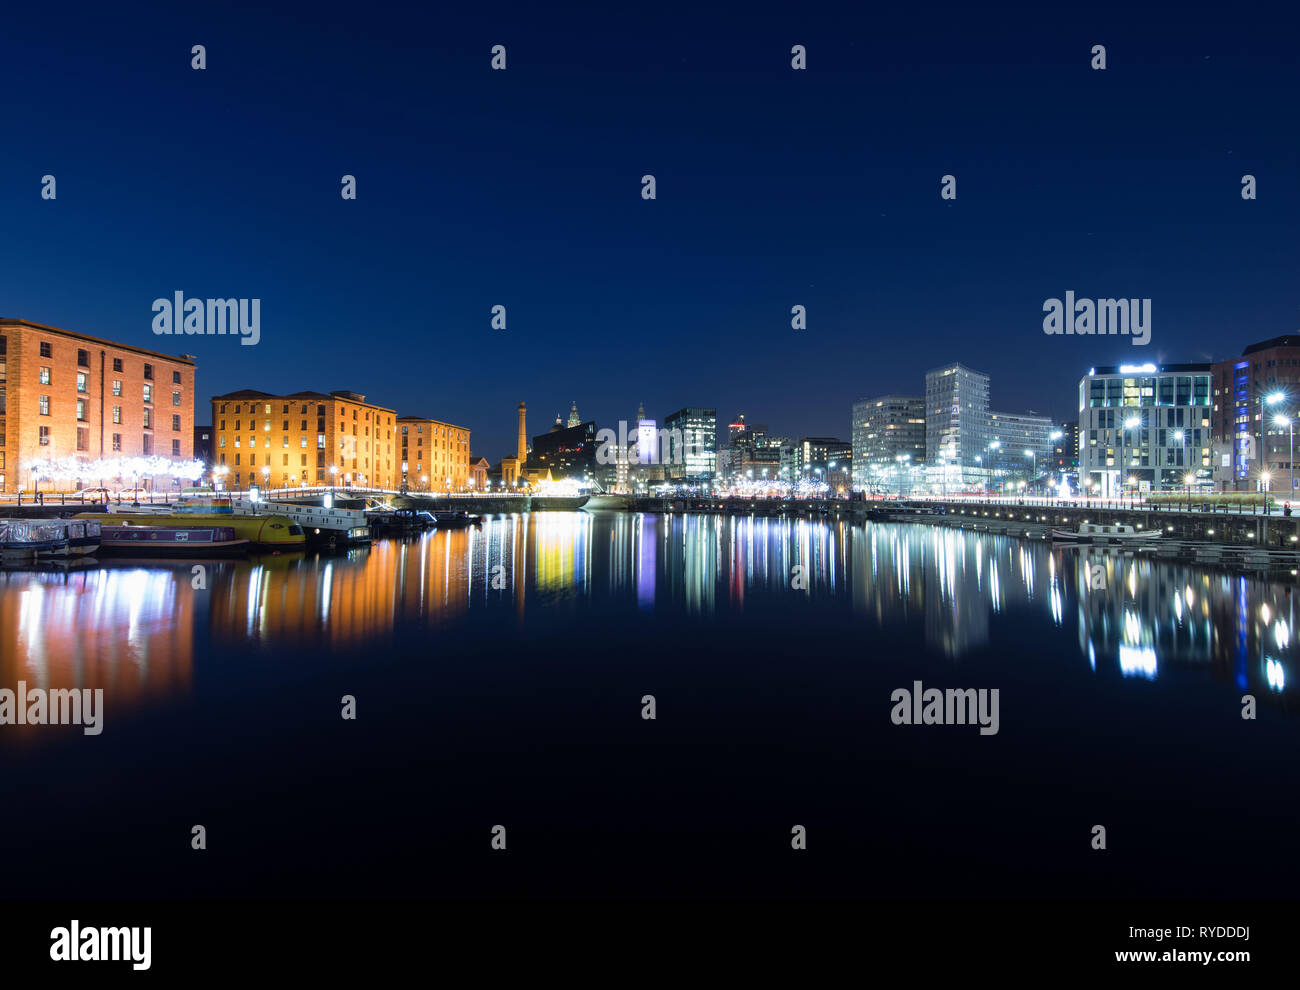 A shot of The fabulous Royal Albert Dock in Liverpool. Even the stars came out for this long exposure. Stock Photo